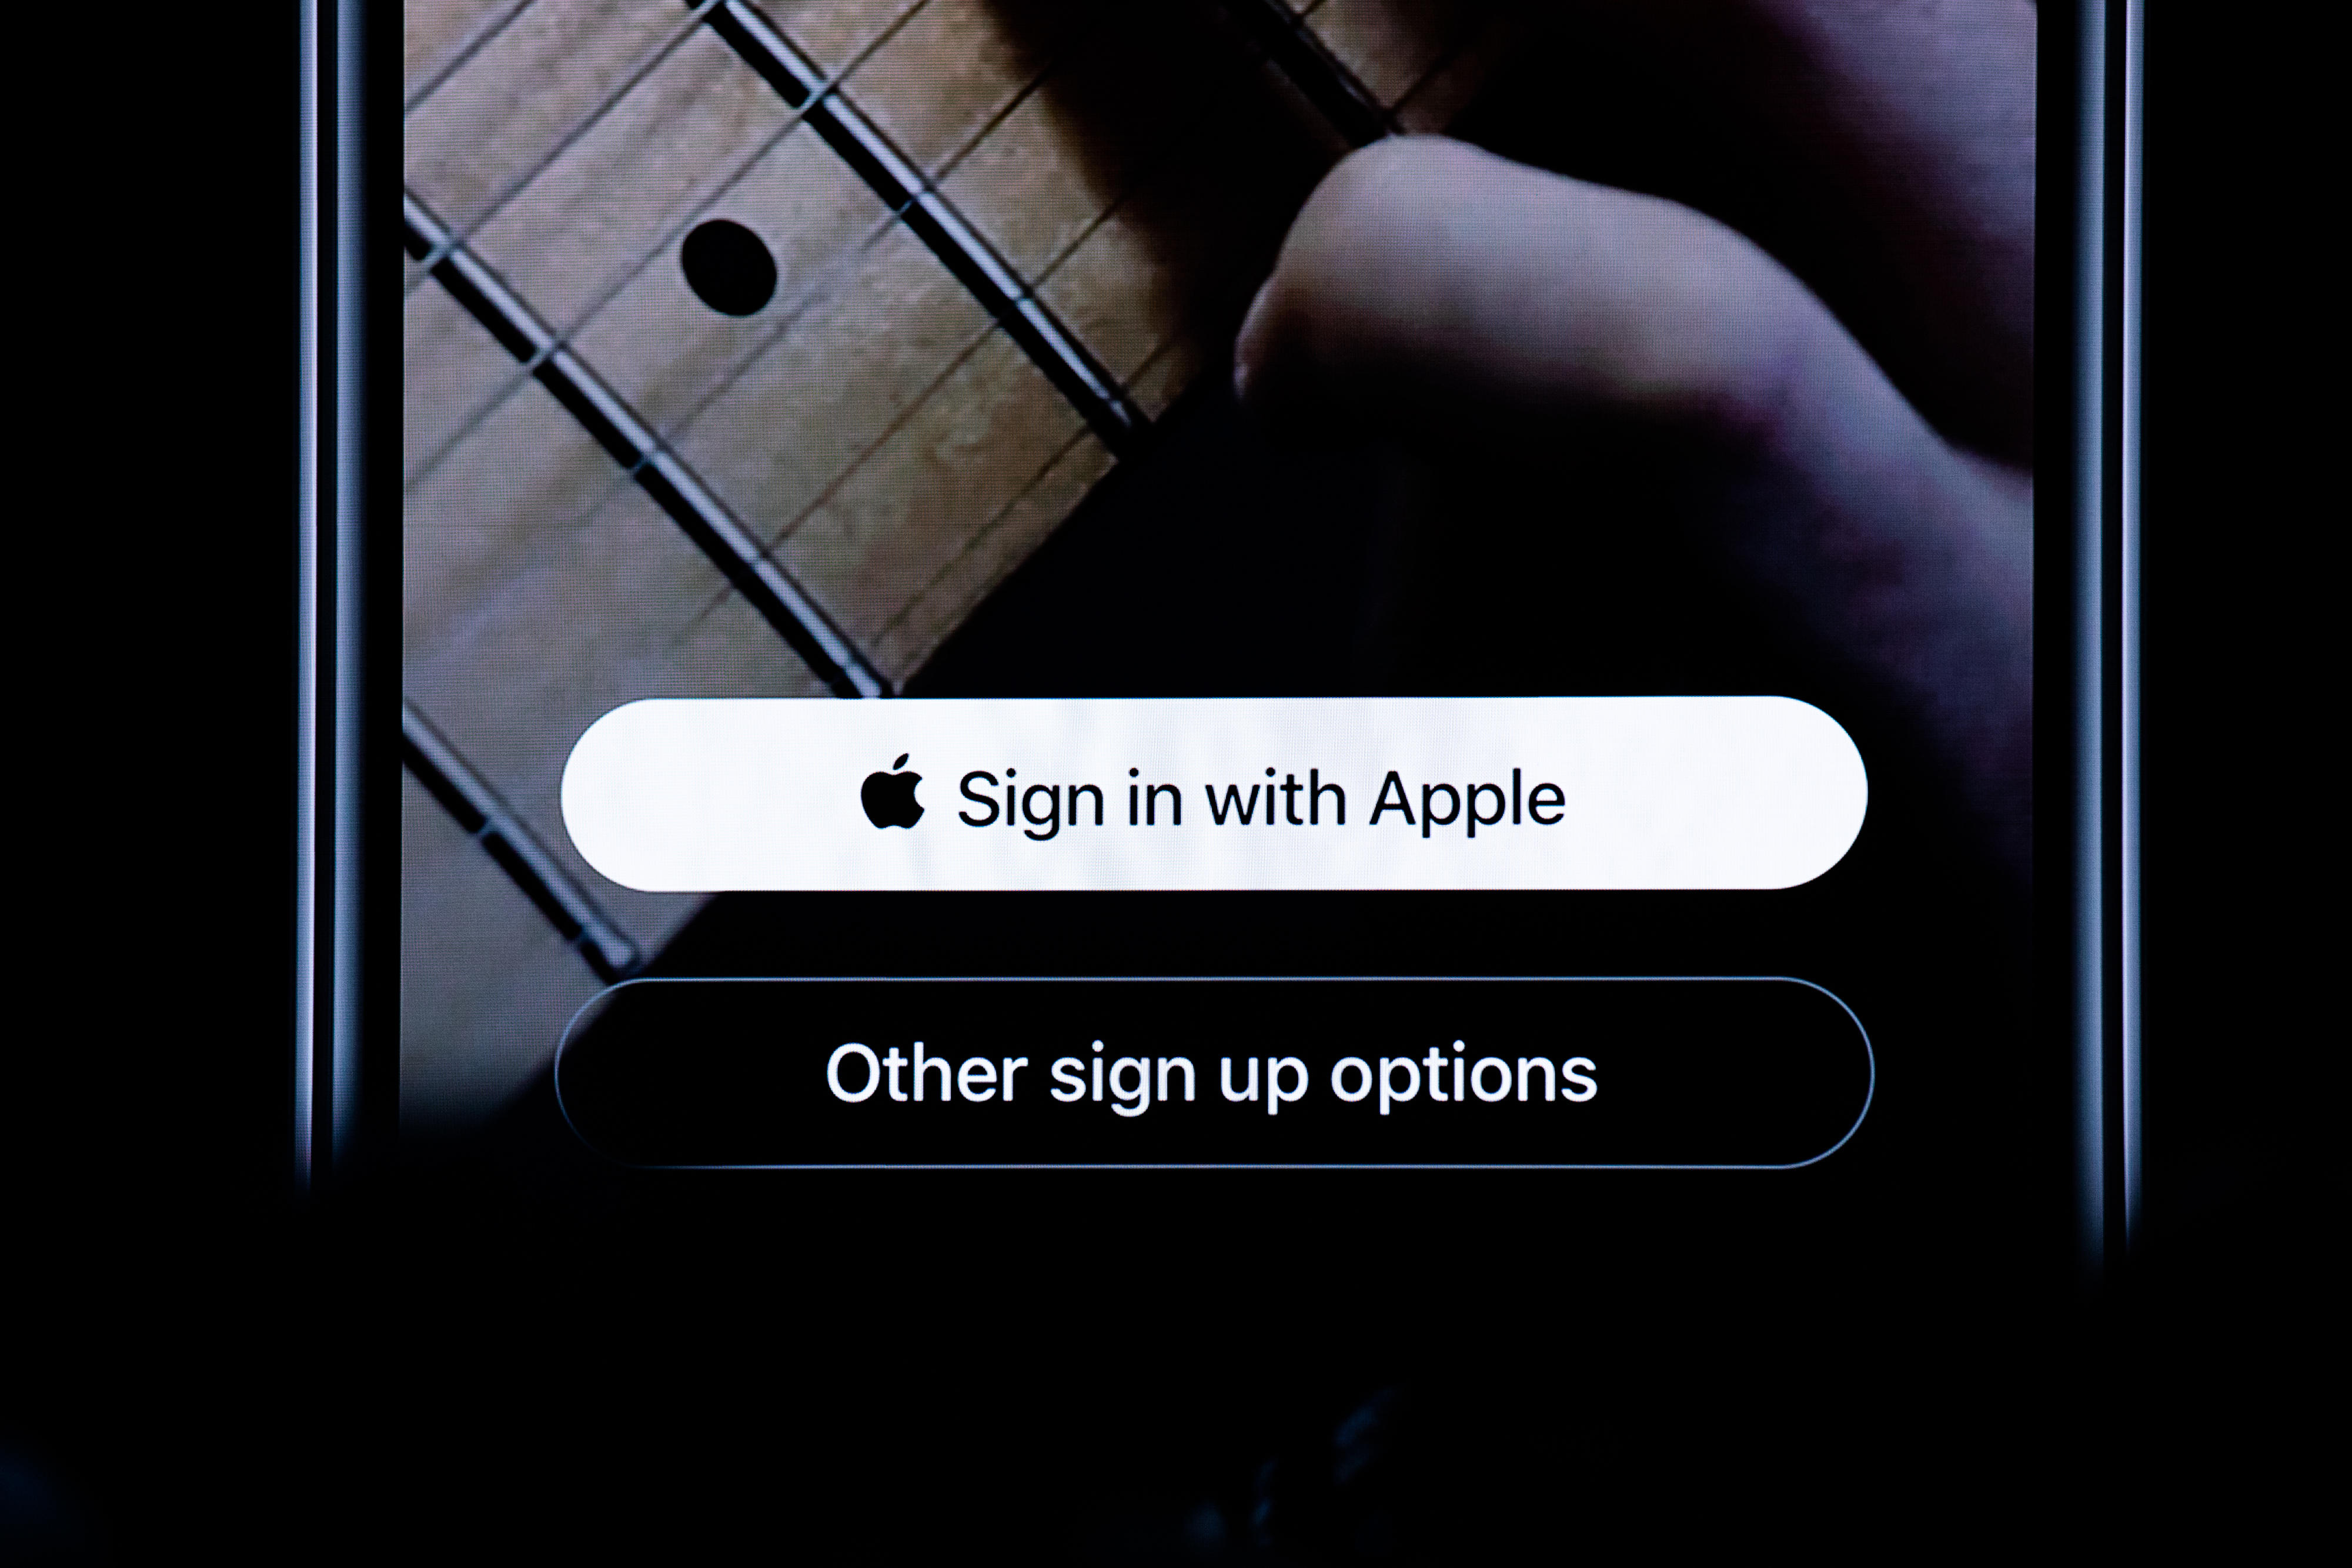 apple-wwdc-2019-sign-in-with-apple-2819